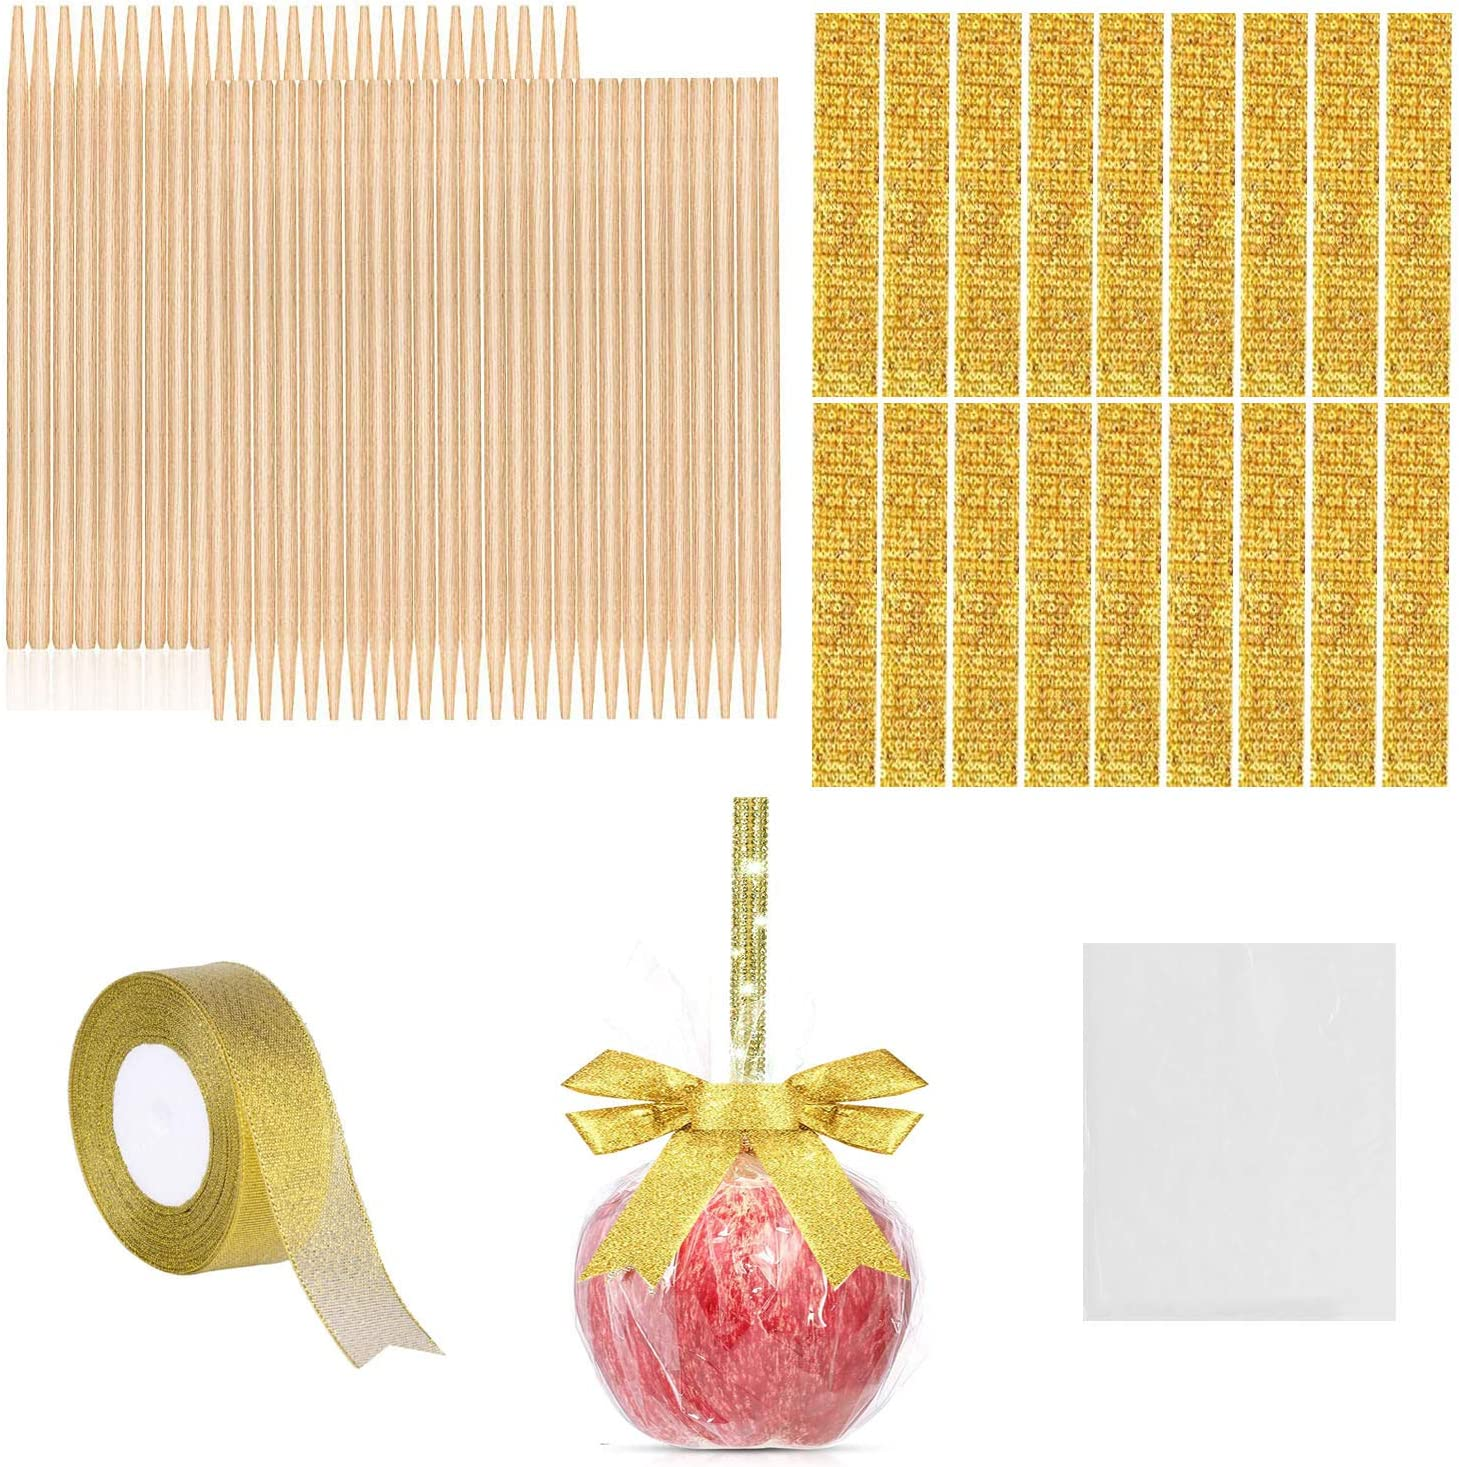 126 Pieces Candy Making Accessory for Festival Party, 50 Pcs Bamboo Candy Sticks, 25 Bling Bling Rhinestone Sticker, 50 Candy Glass Paper, 1 Roll 25 Yard Glitter Ribbon (Gold/Pink) (Golden)